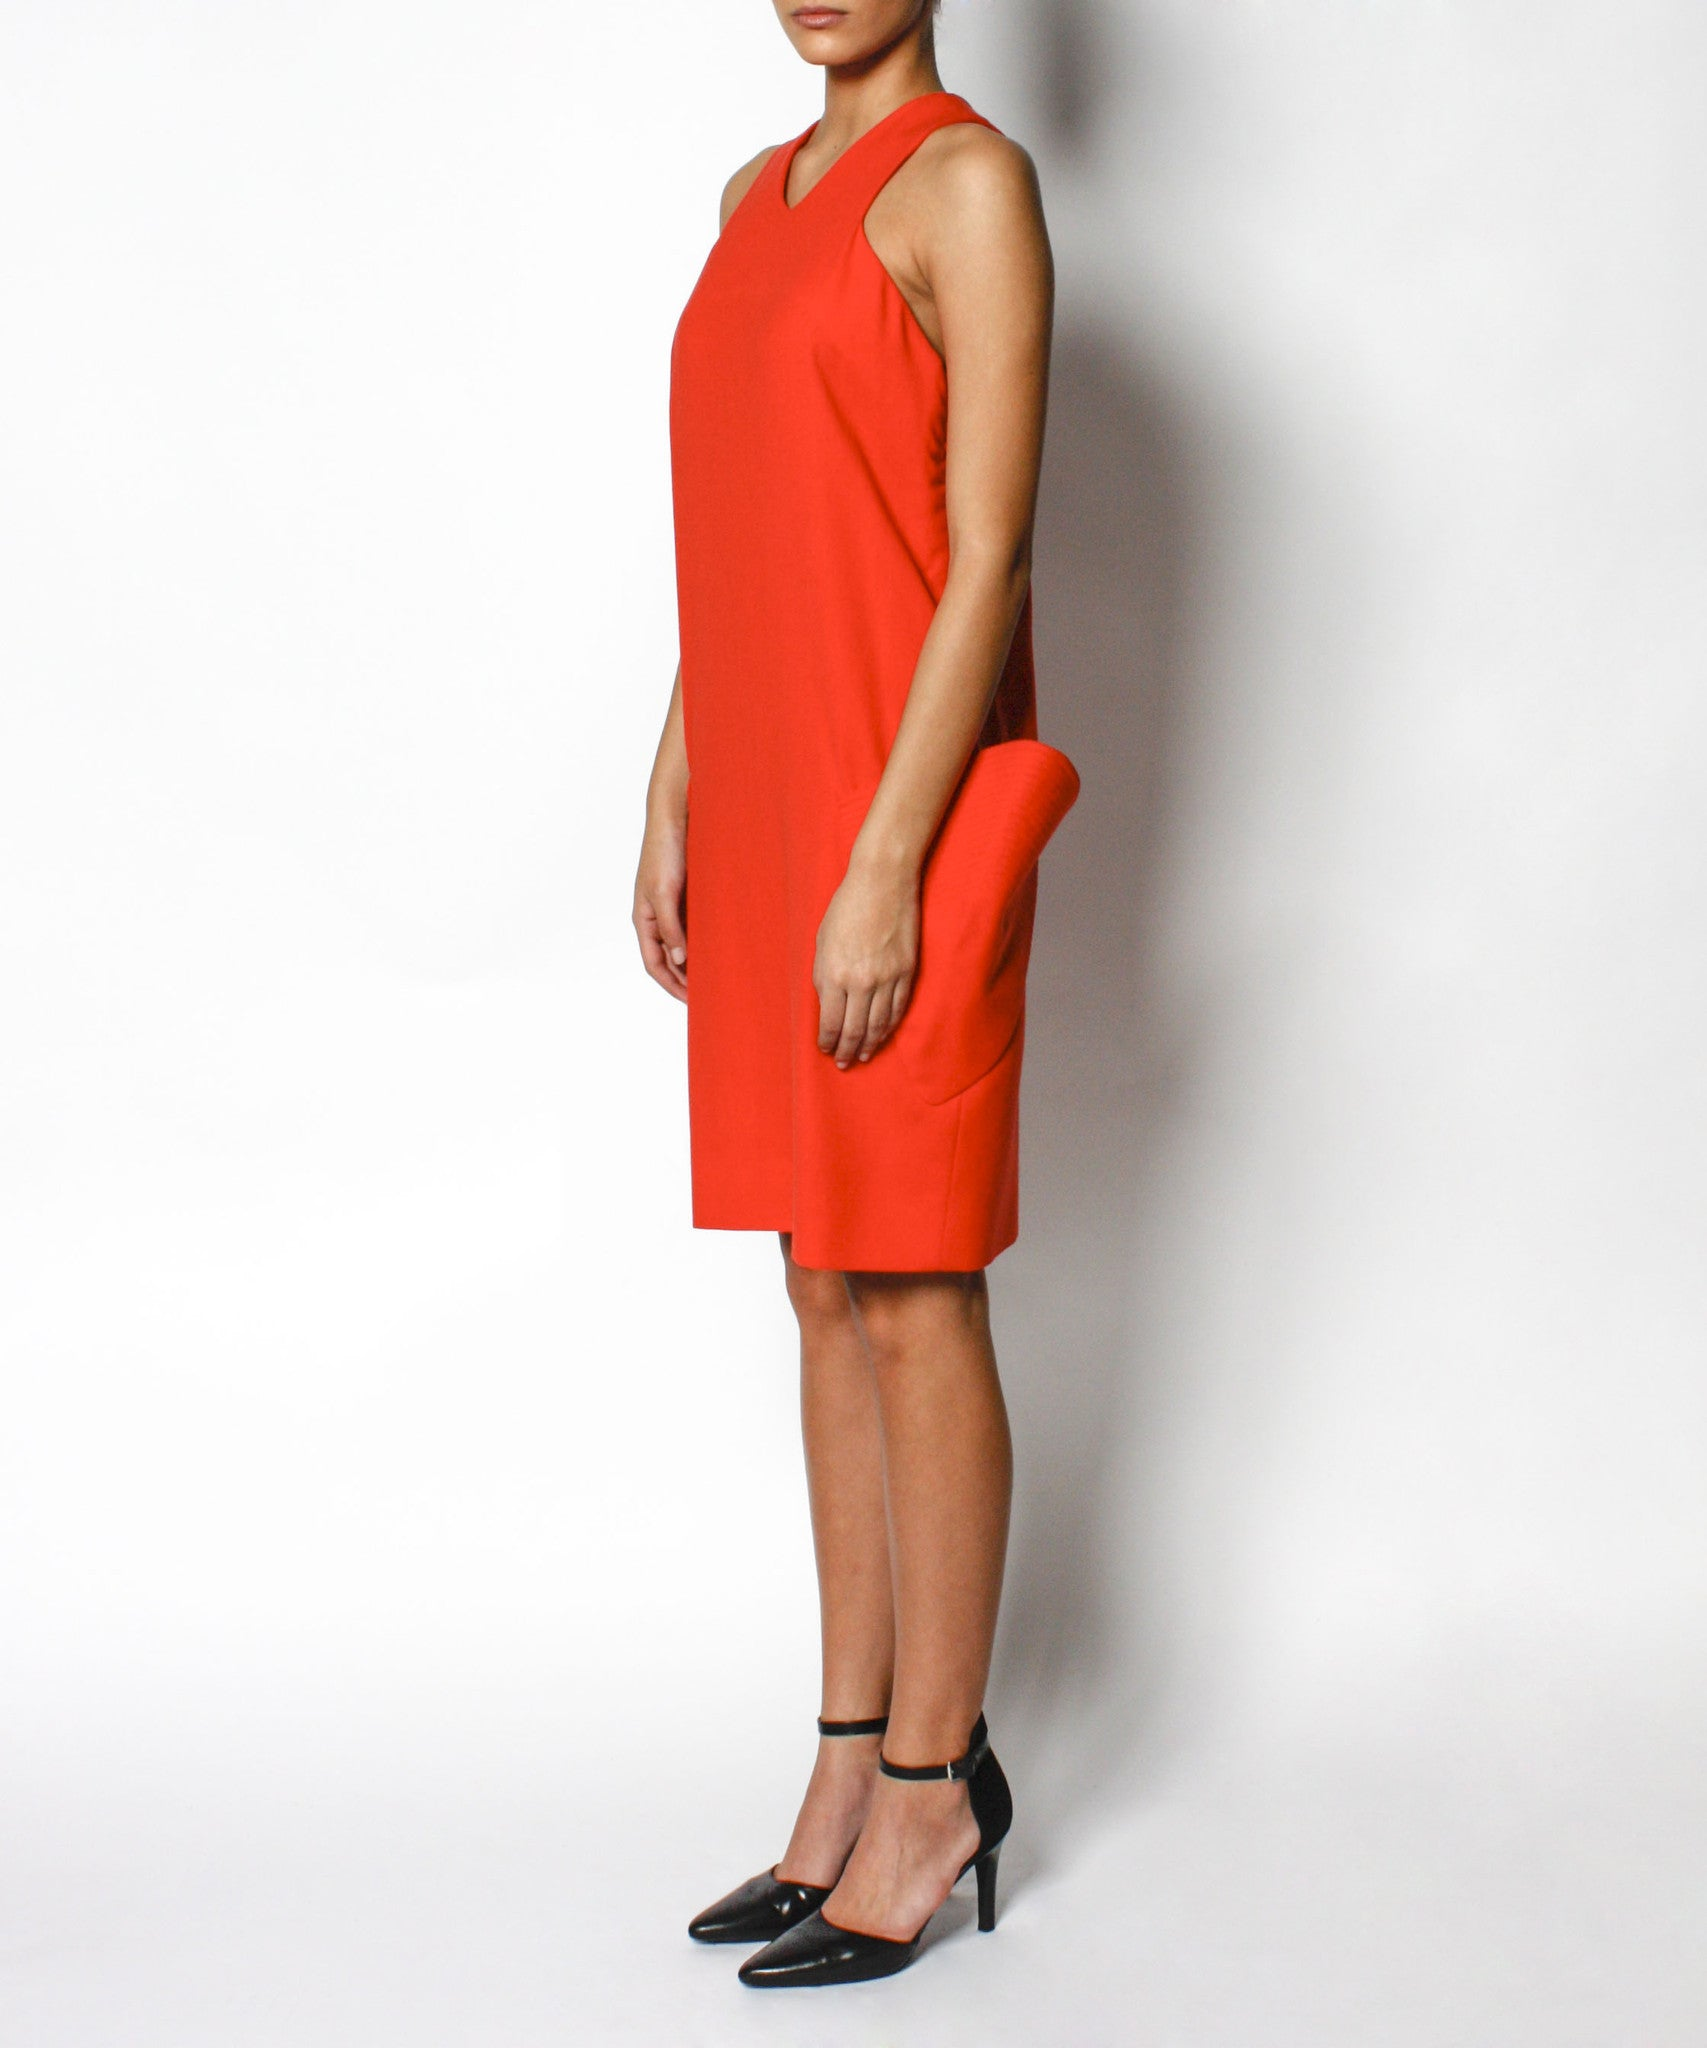 Gianni Versace 1980s Hot Orange Shift Dress